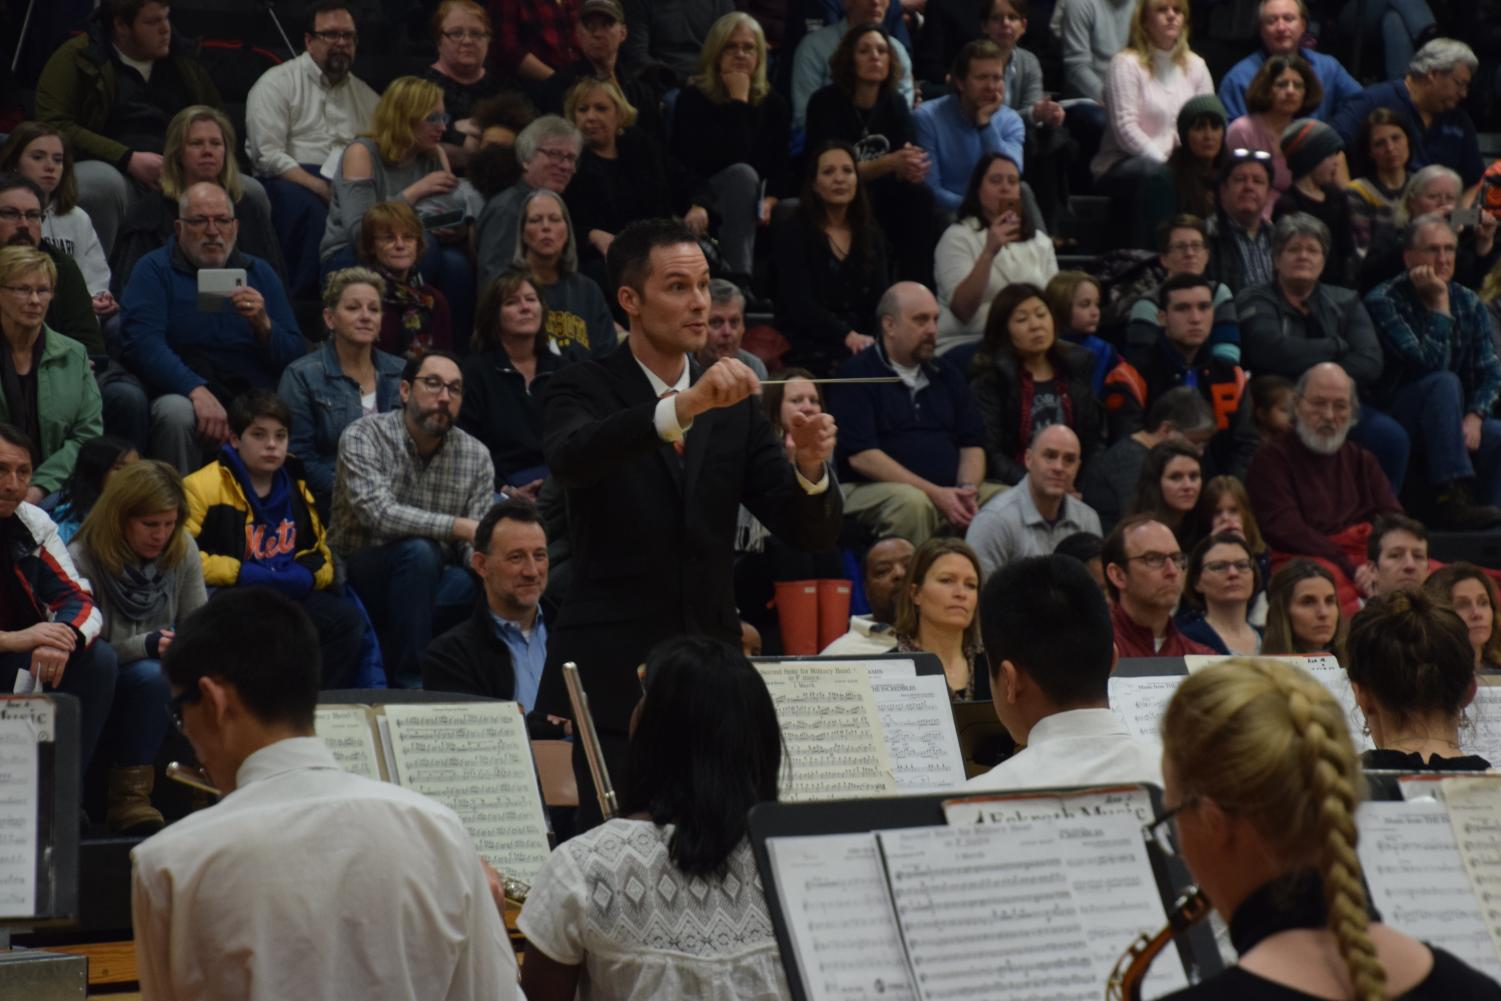 Band director Steven Schmitz conducts the high school band during the district wide concert Feb. 26. Schmitz will be teaching band in Cape Town, South Africa from May 13 to June 6.